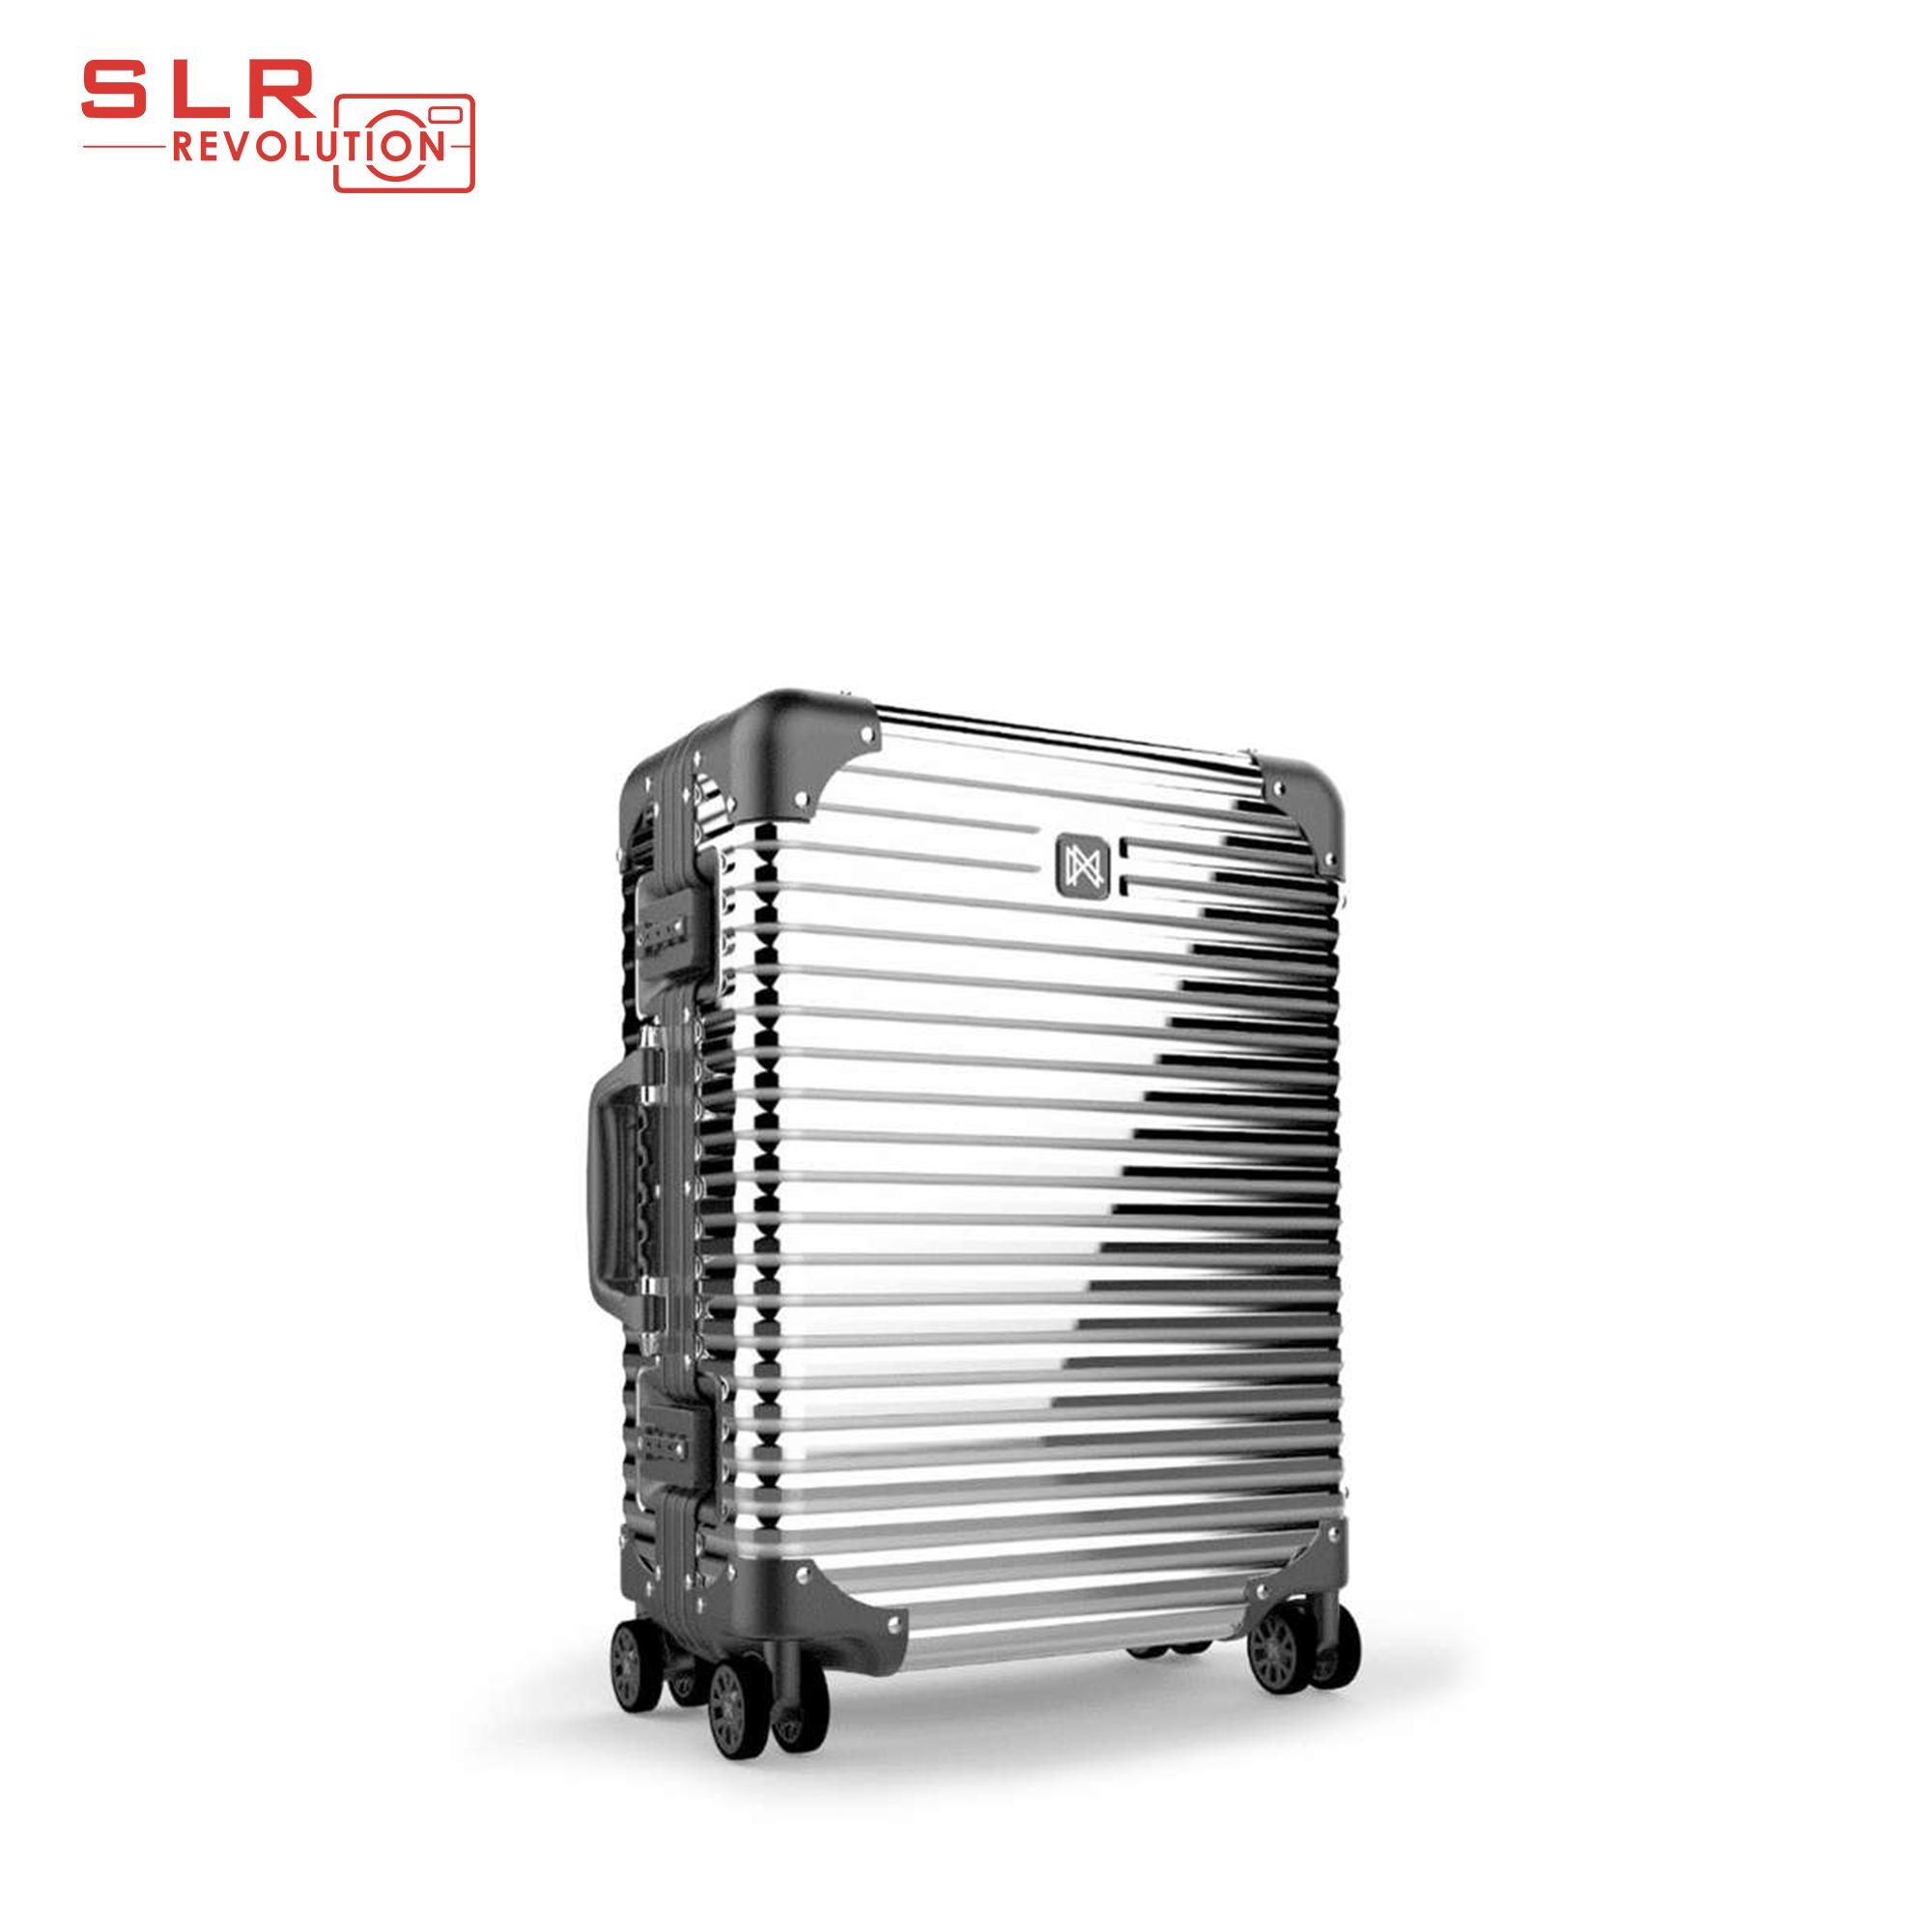 Lanzzo Norman 20 inch Luggage ( Magnesium-Alloy )